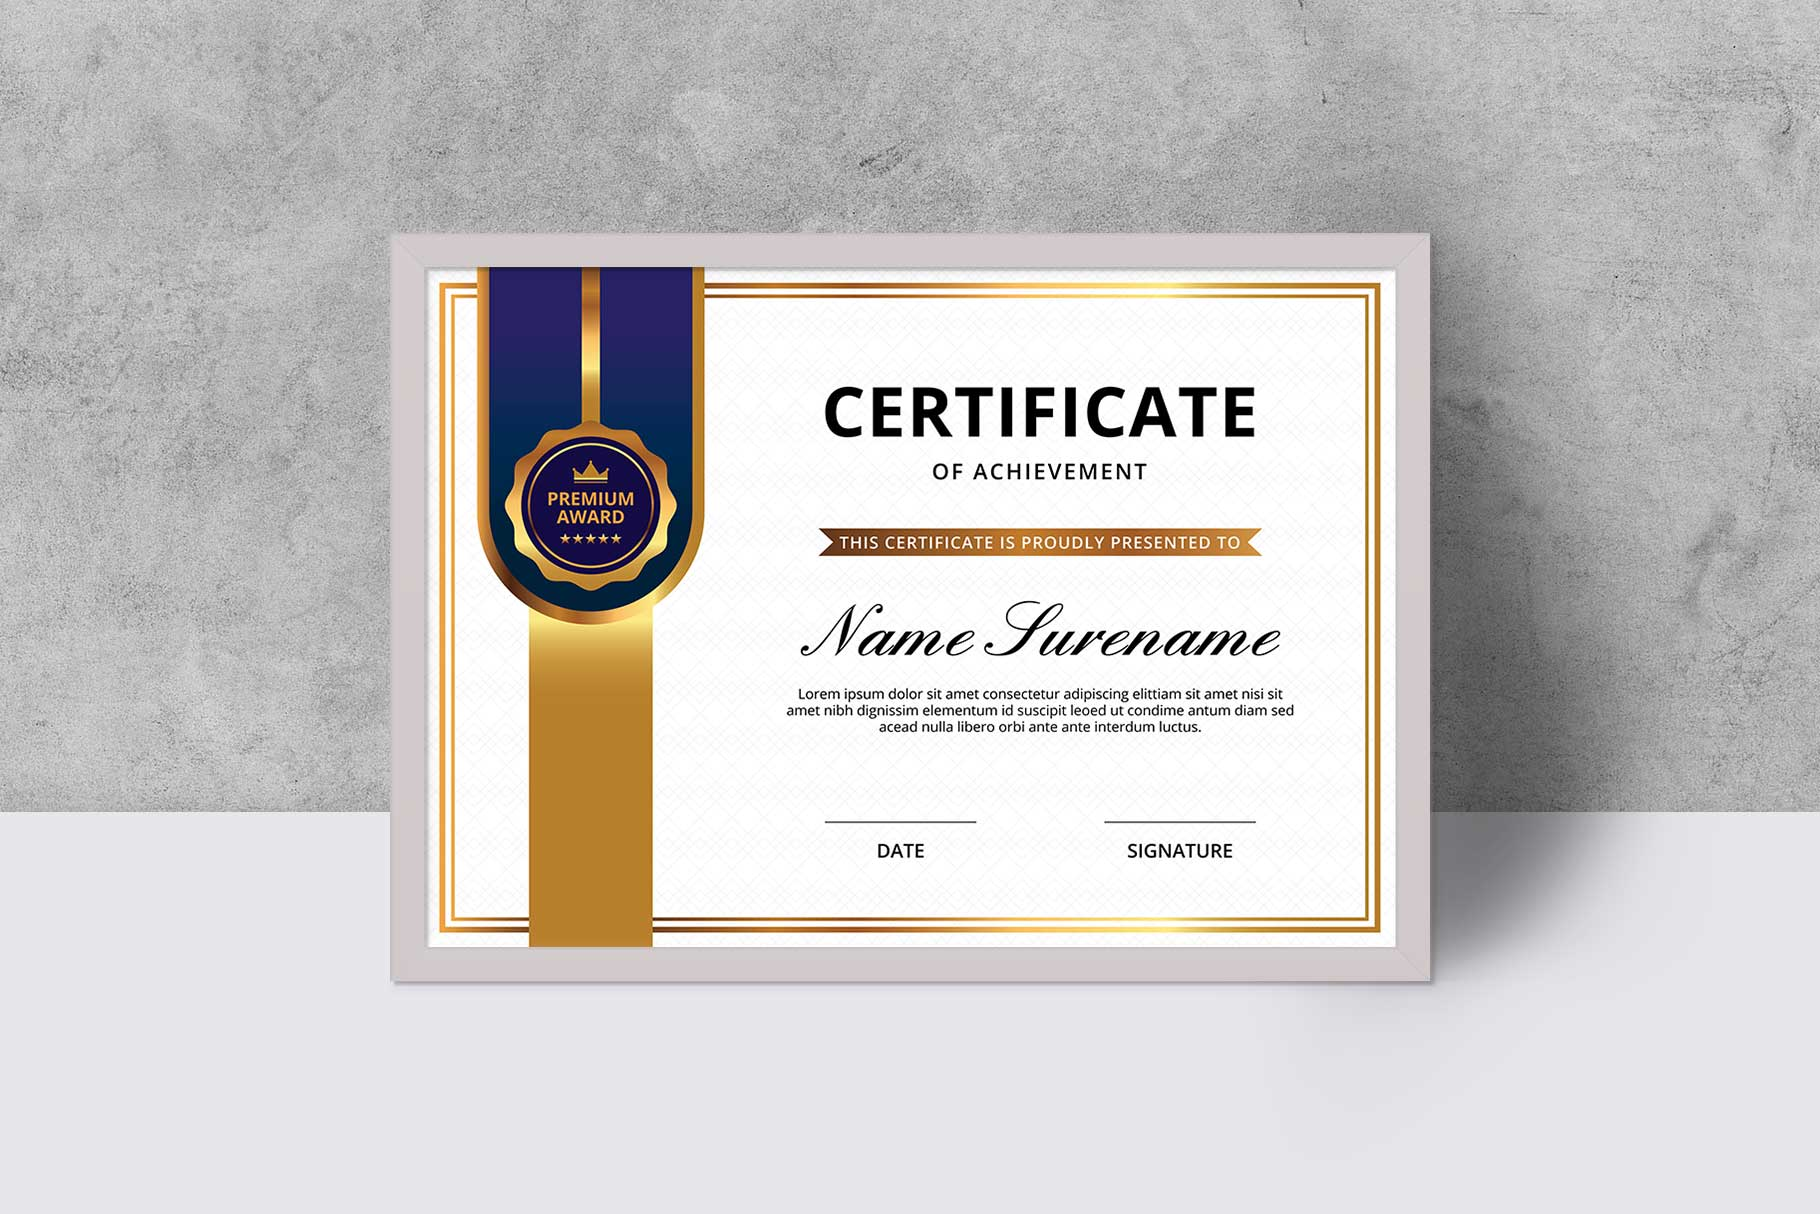 Certificate example image 1